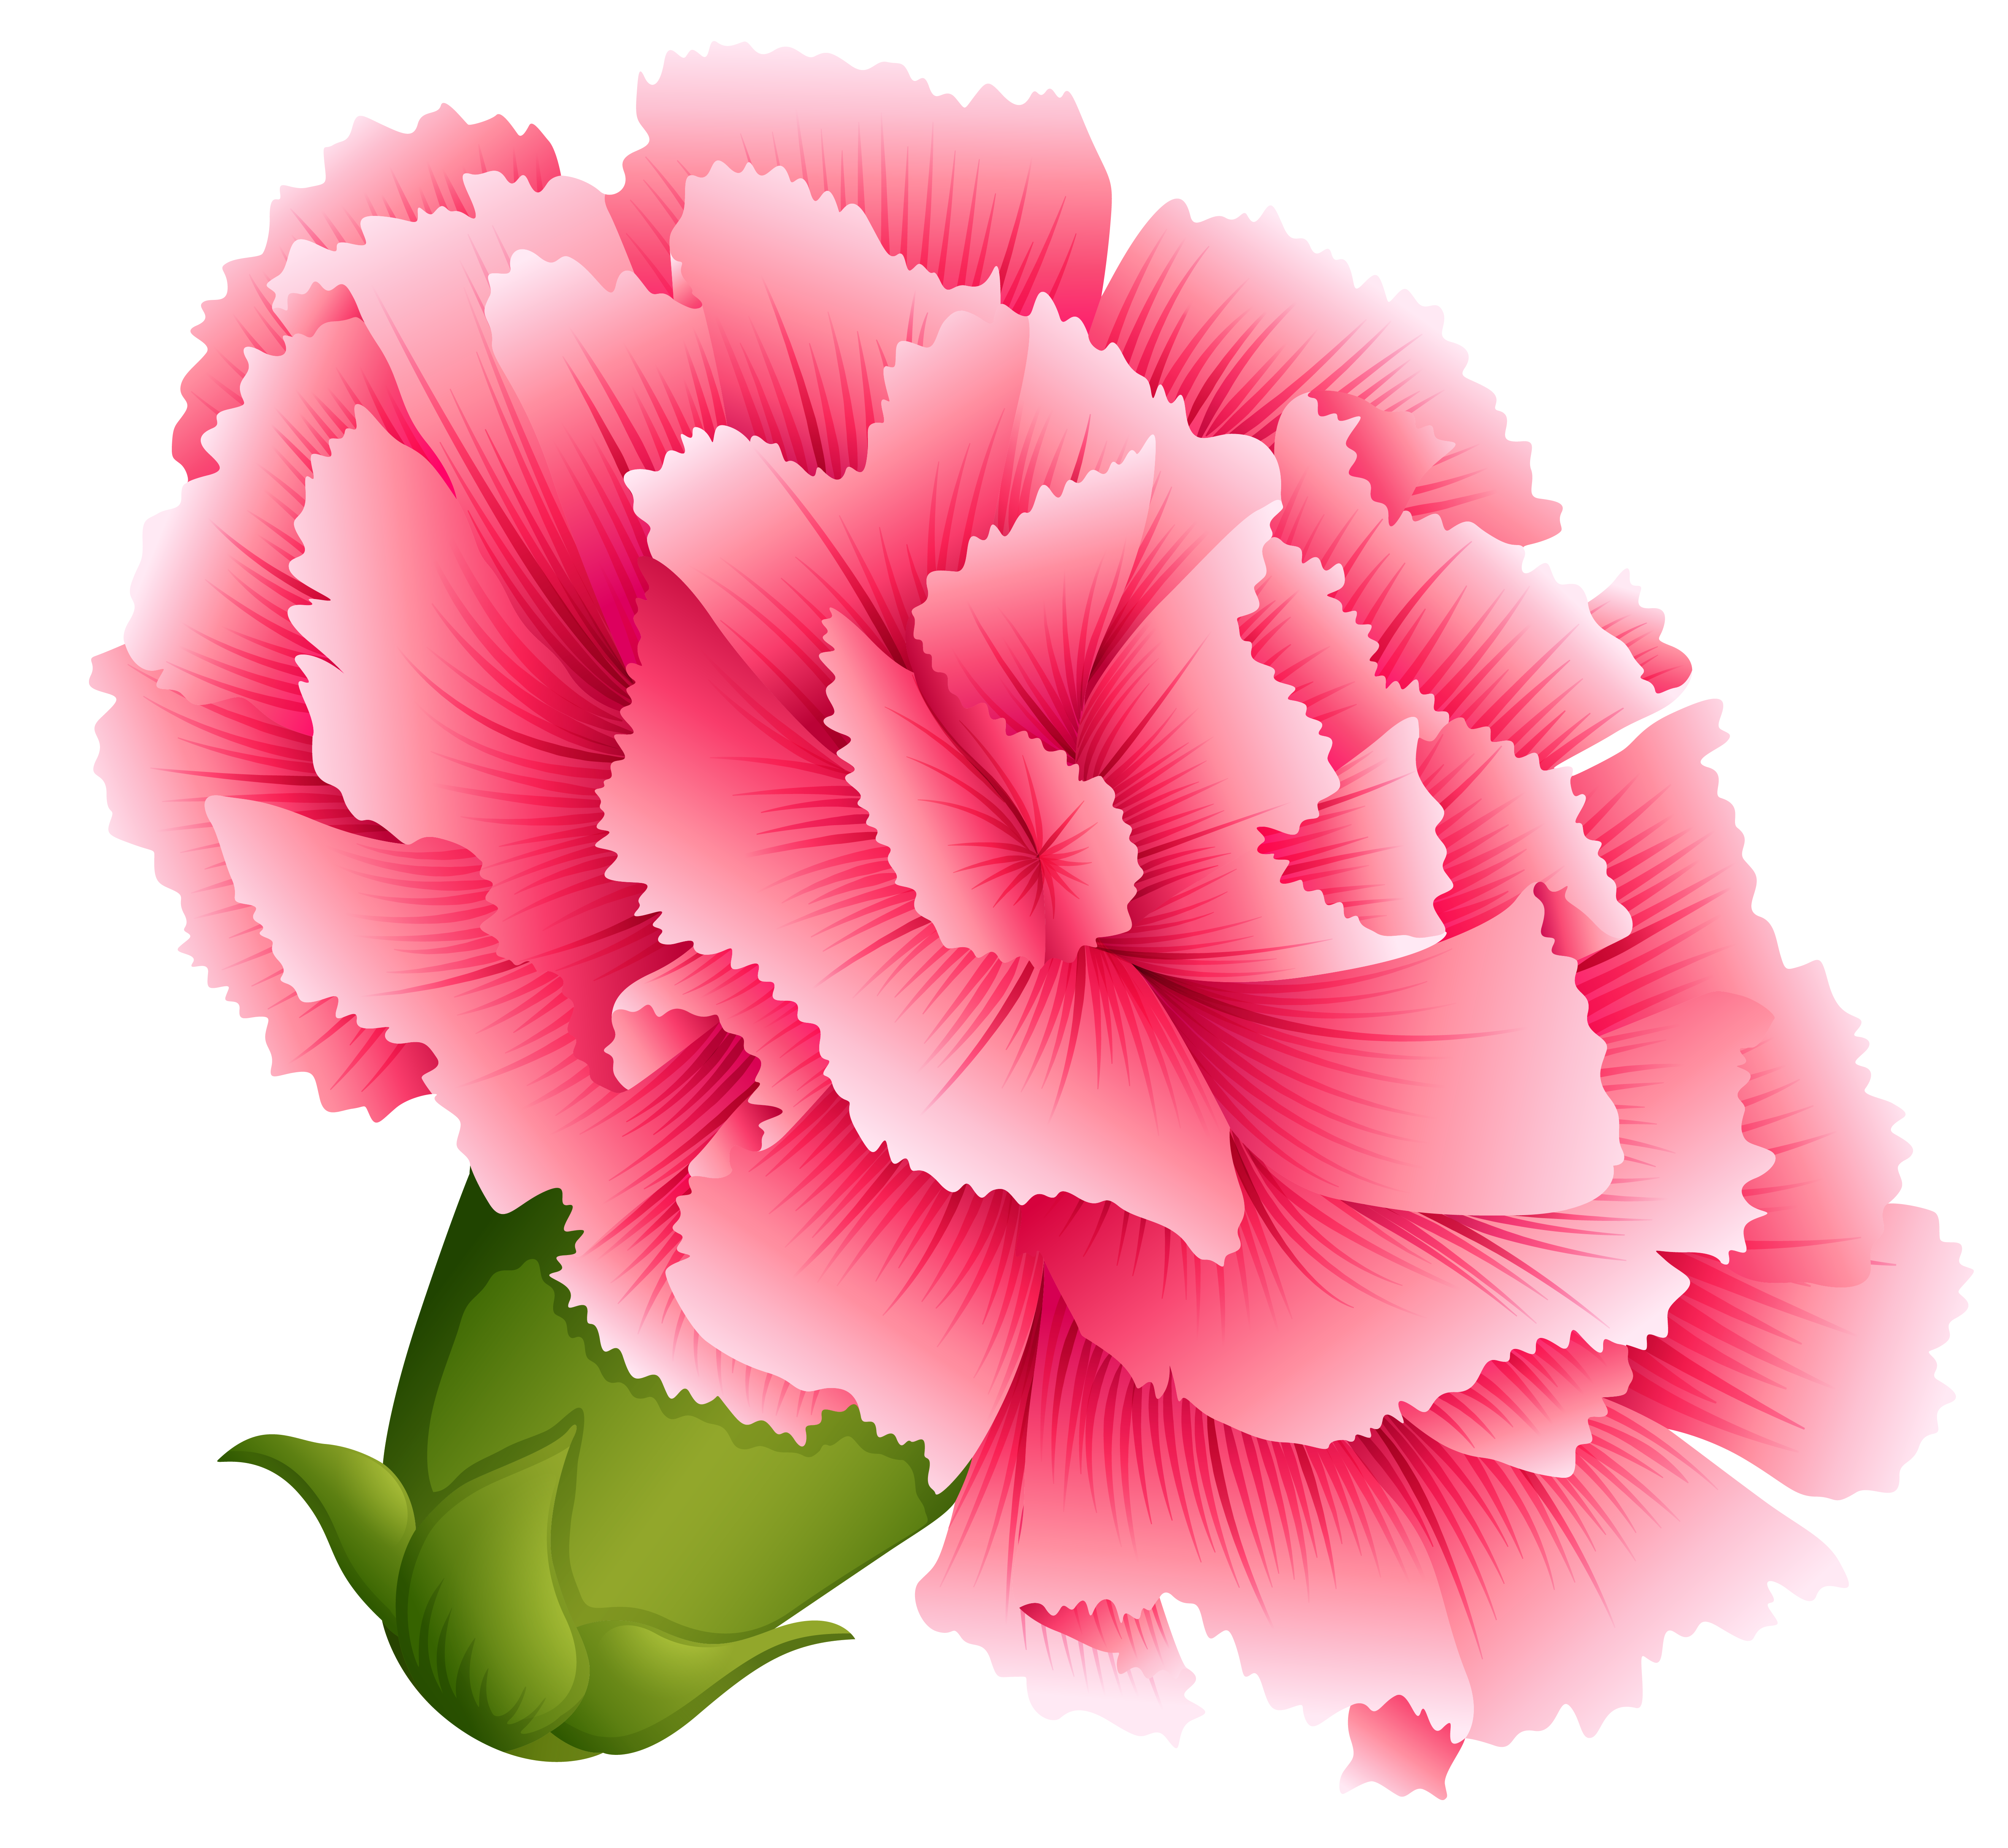 Pink Carnation PNG Clipart Image.